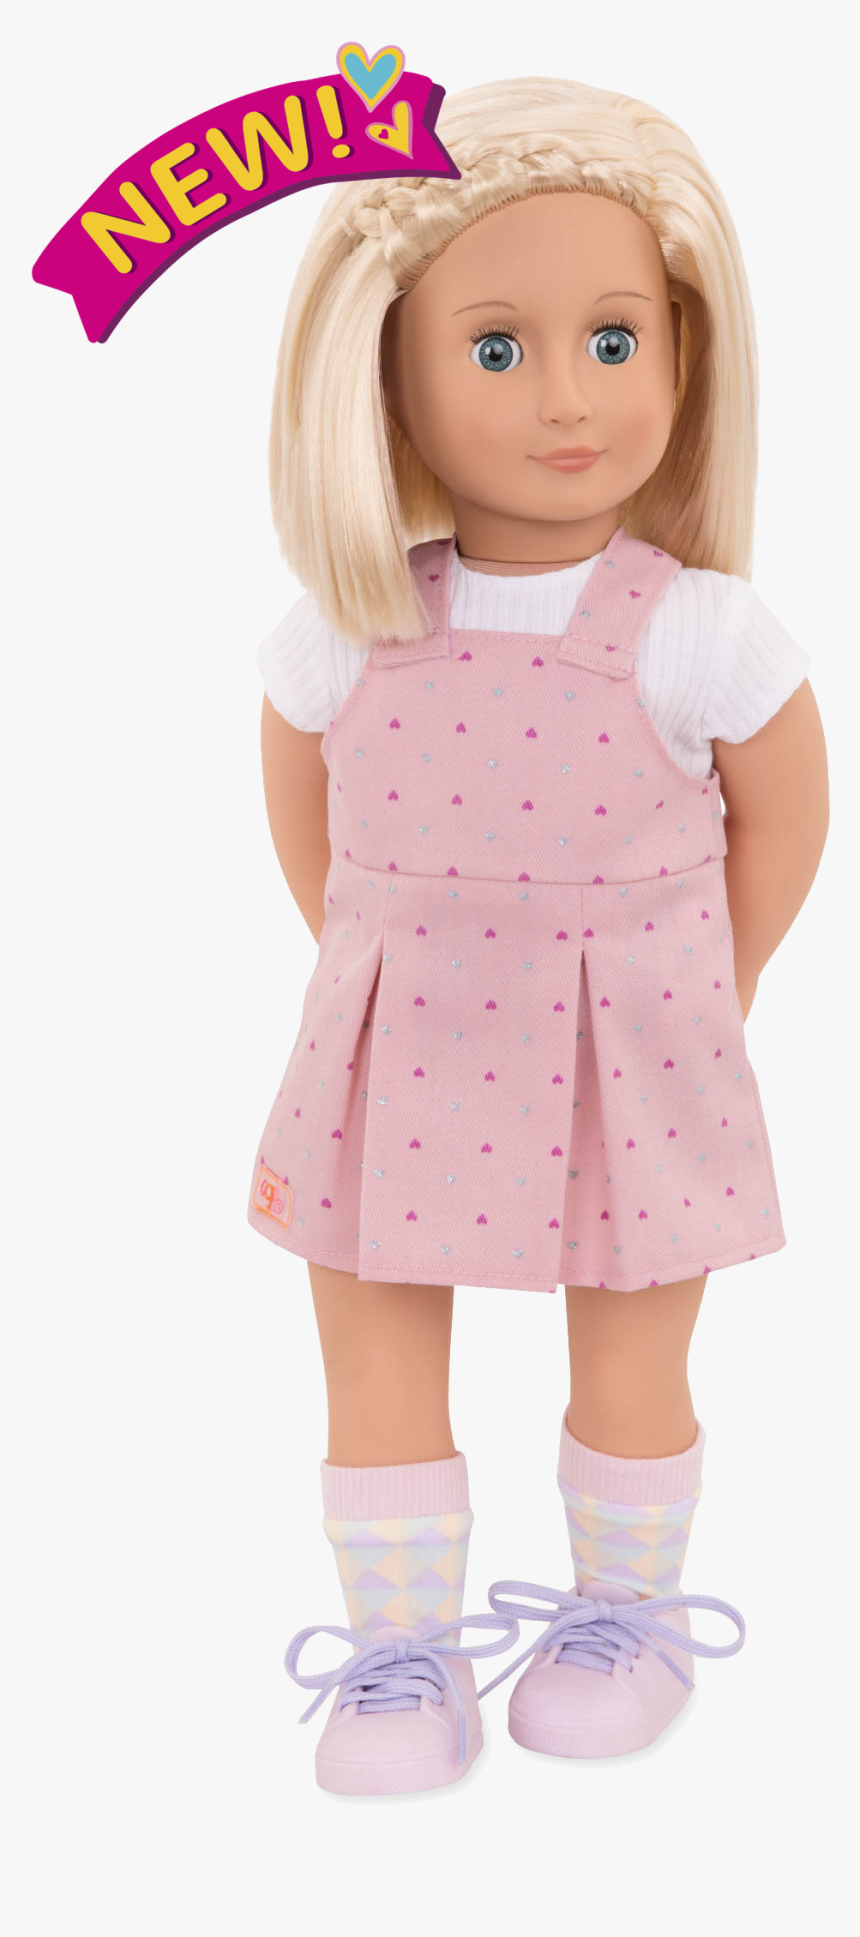 Naty 18-inch Doll With Short Hair - Doll, HD Png Download, Free Download